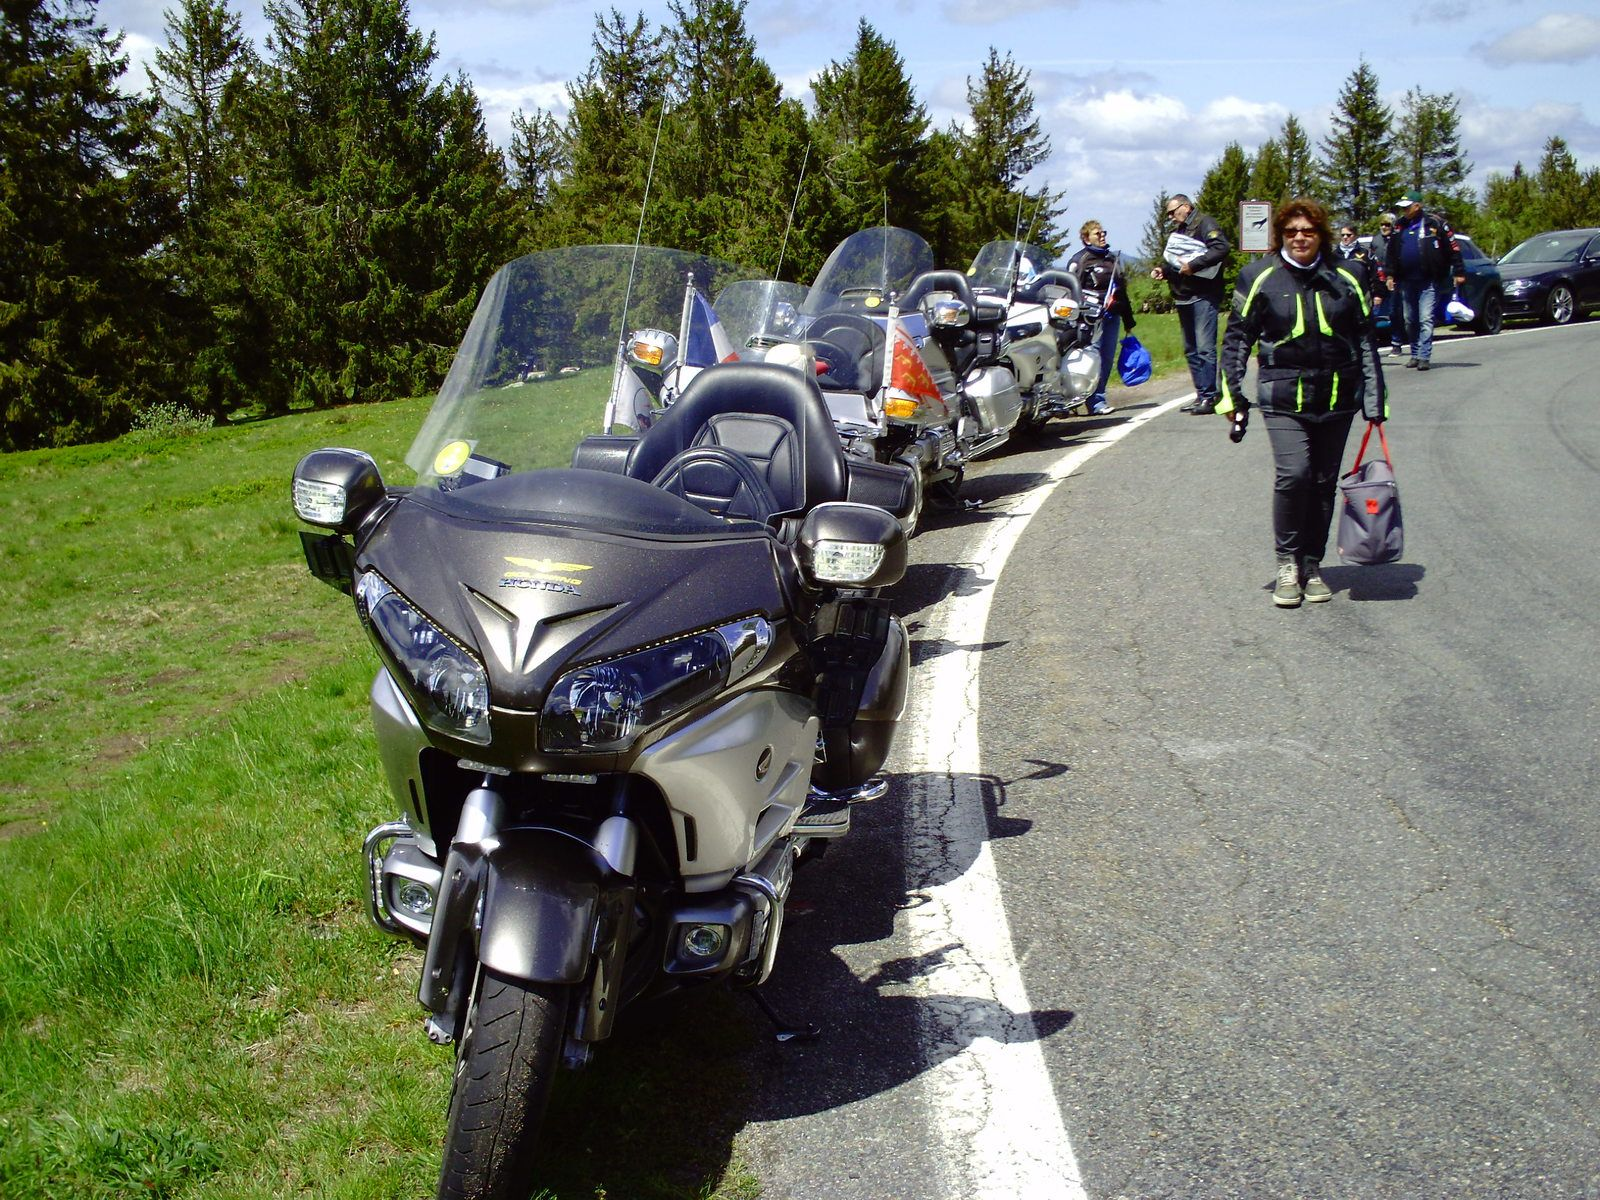 Goldwing Unsersbande - Ballade suite dé-confinement Covid19